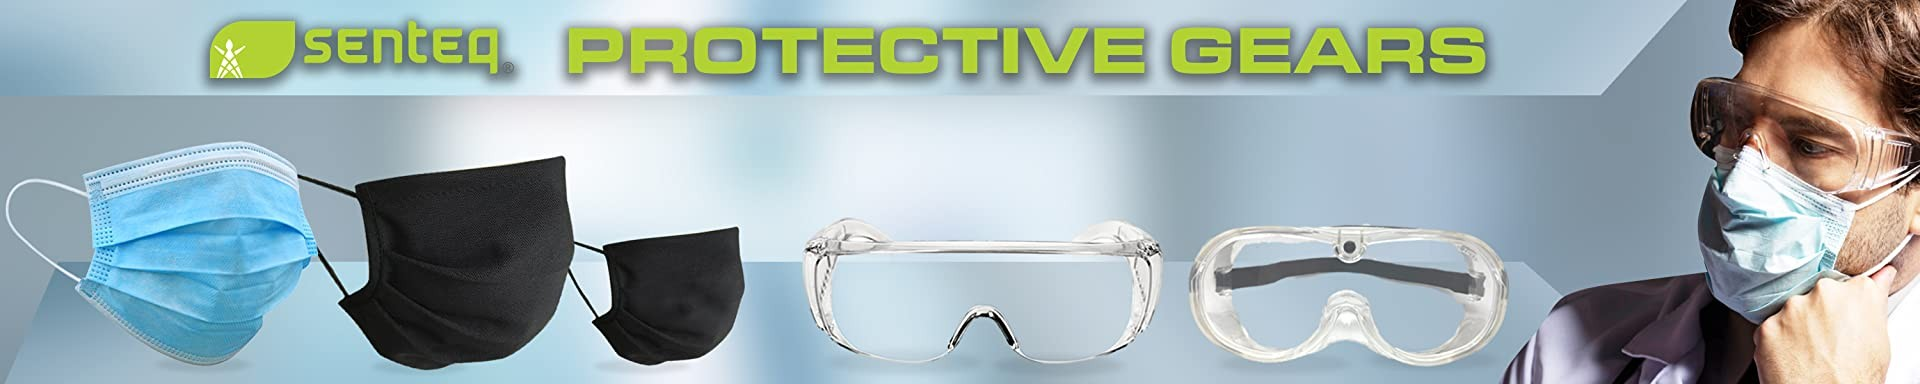 Safety Goggles - Lab Glasses - Medical Face Protection - Clear Lens Anti-Splash - Dust Proof Wearable Eyeglasses mask kid Disposable General Use 3 Ply Face Cover Shield